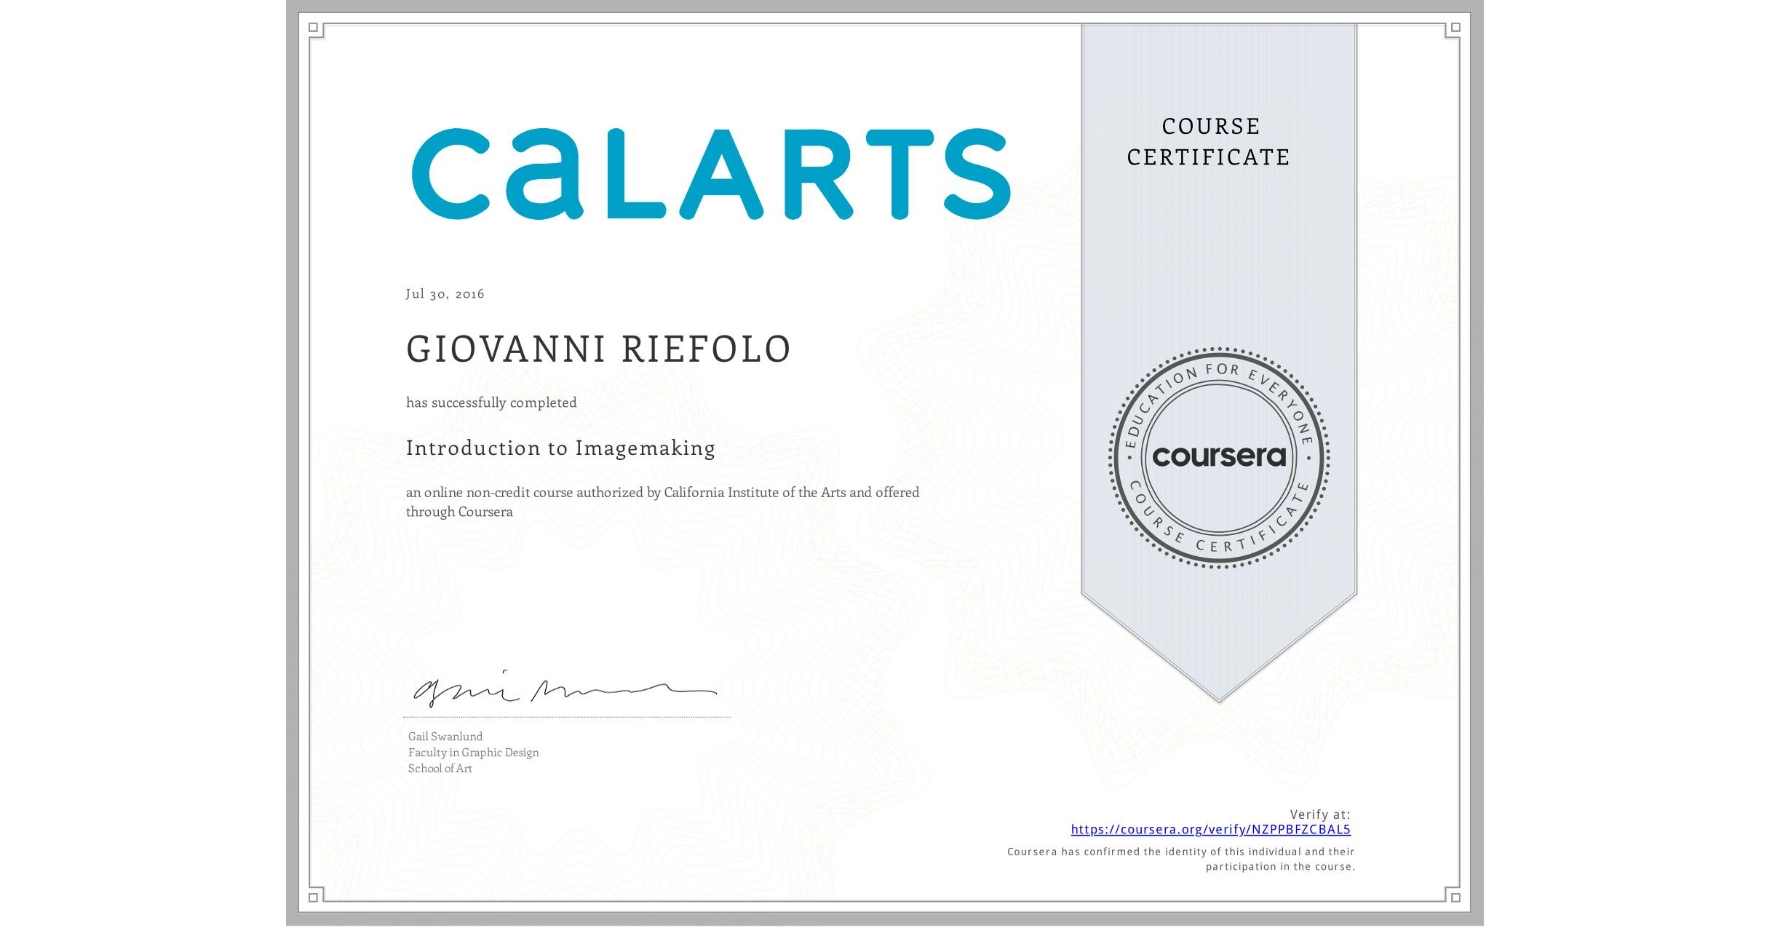 View certificate for GIOVANNI RIEFOLO, Introduction to Imagemaking, an online non-credit course authorized by California Institute of the Arts and offered through Coursera